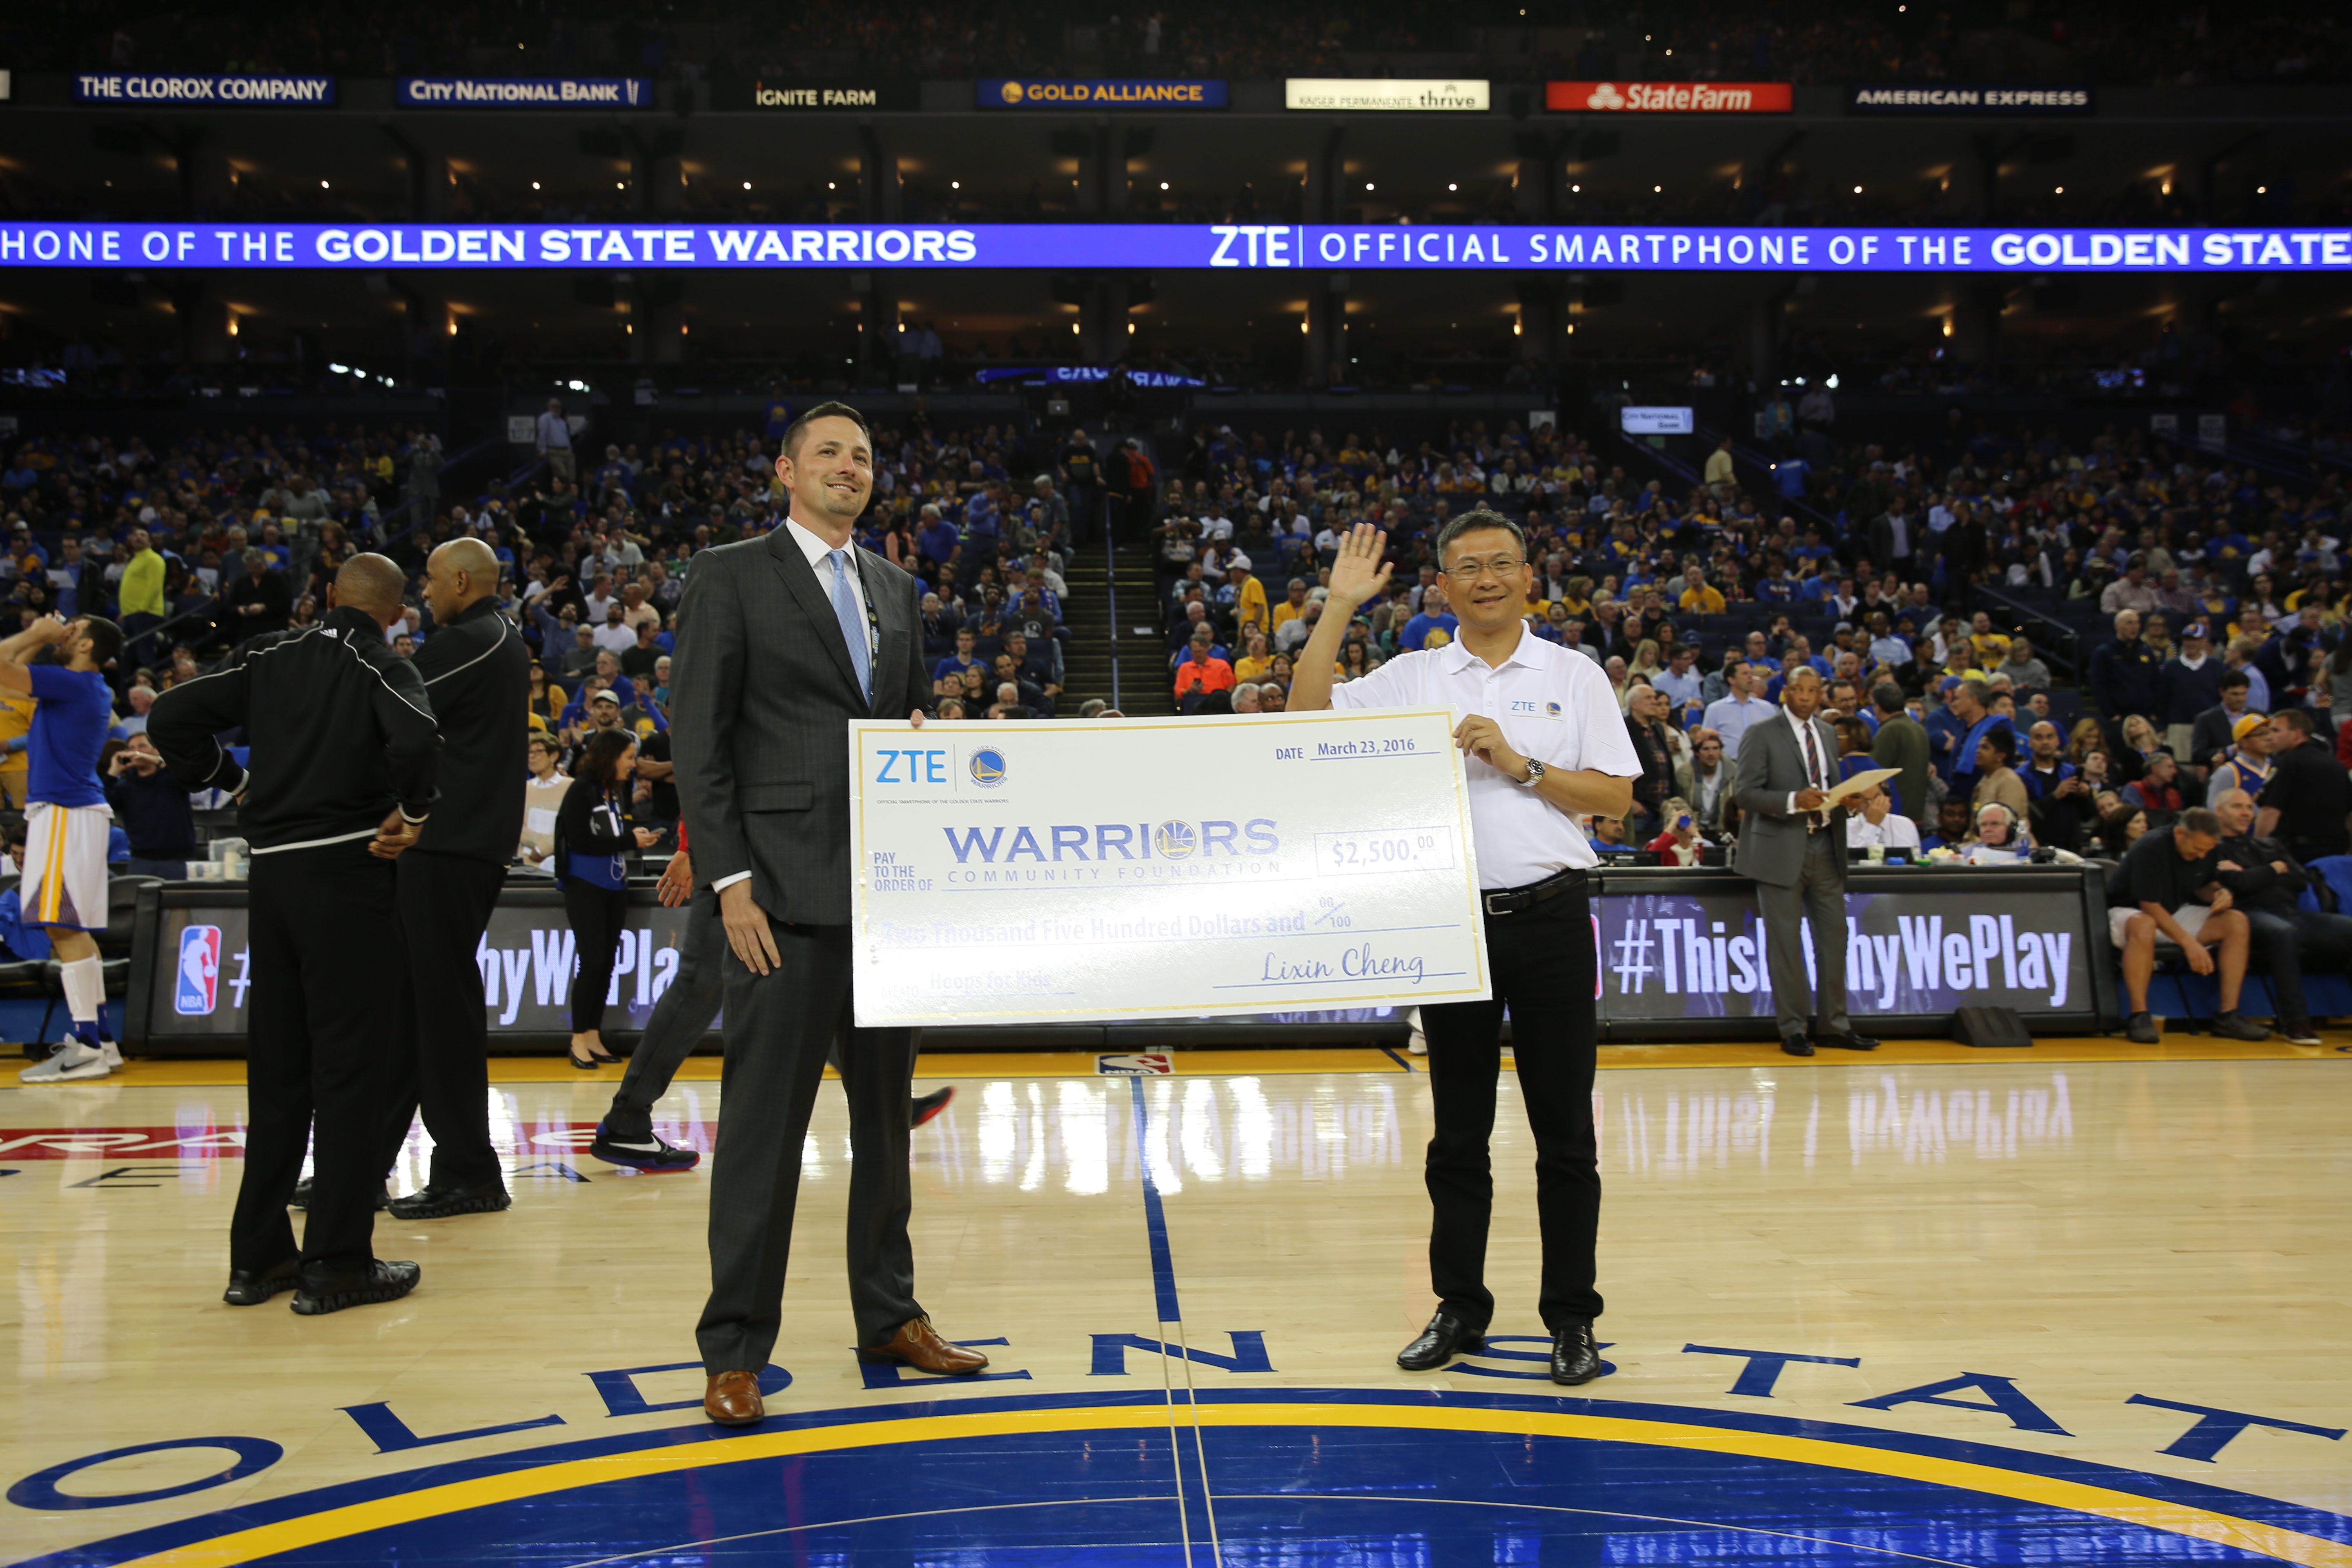 ZTE Teamed Up with the Golden State Warriors to Launch Phone Drive